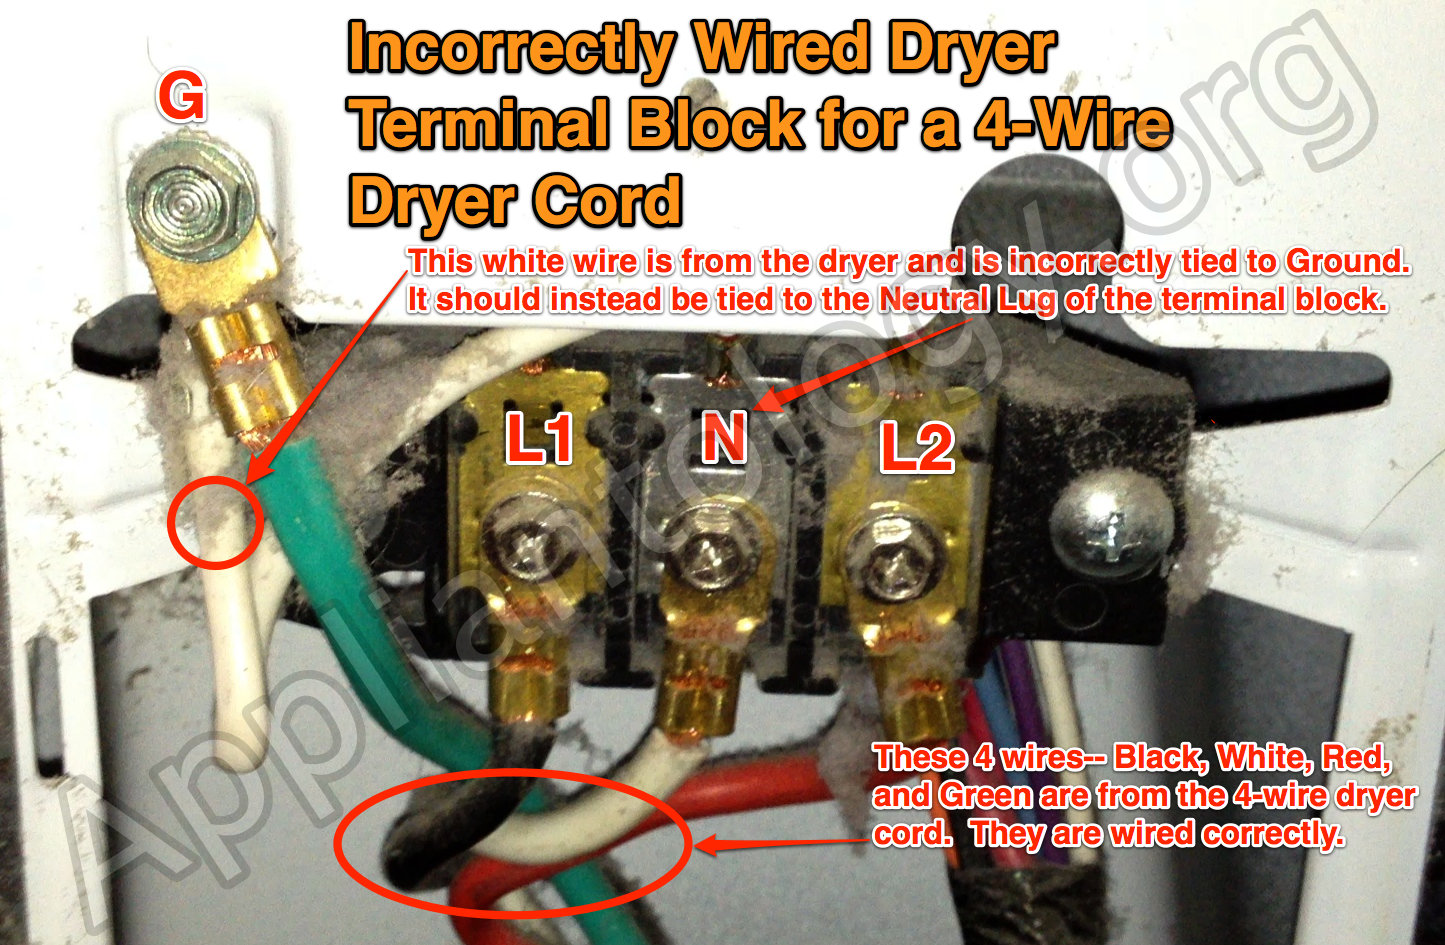 Incorrectly Wired Dryer Terminal Block For A 4 Wire Dryer Cord The Dryer  220 4 Wire Diagram 4 Wire Dryer Diagram